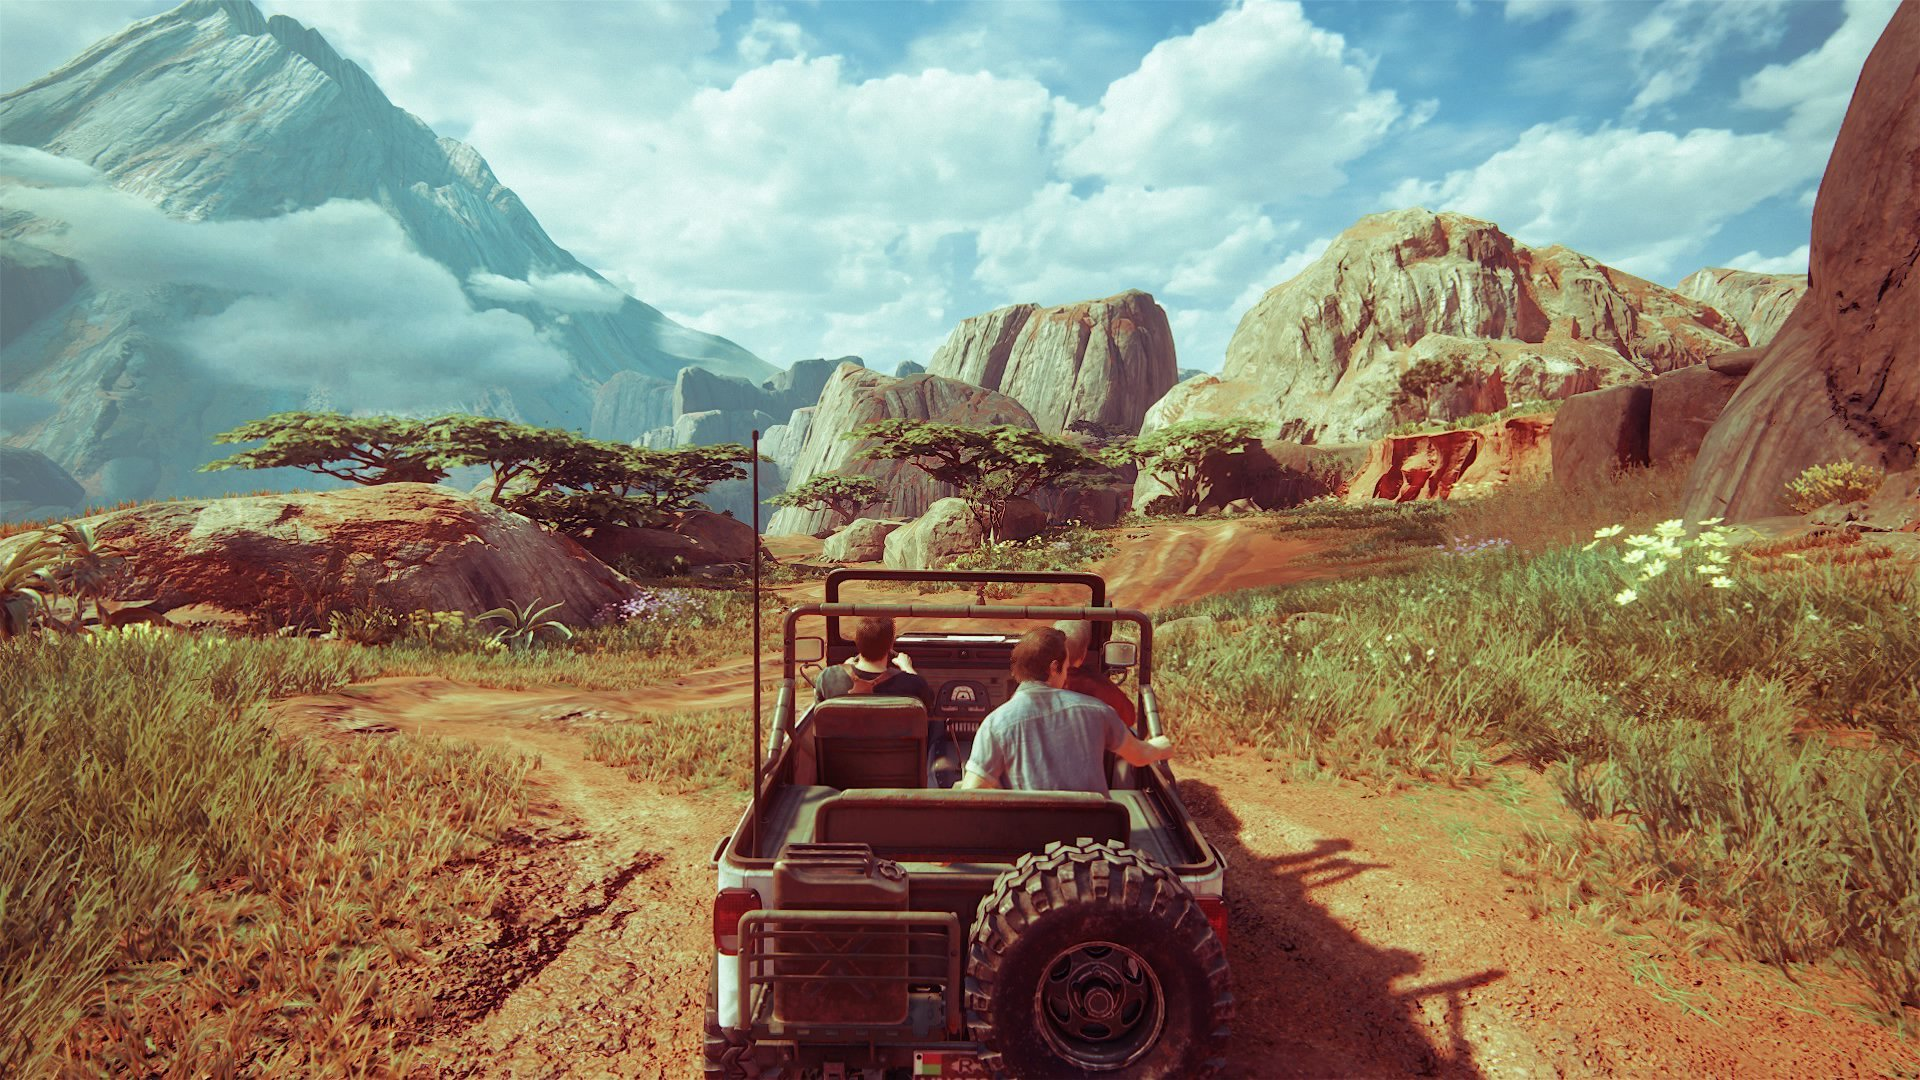 uncharted-4-photo-mode-filters-7